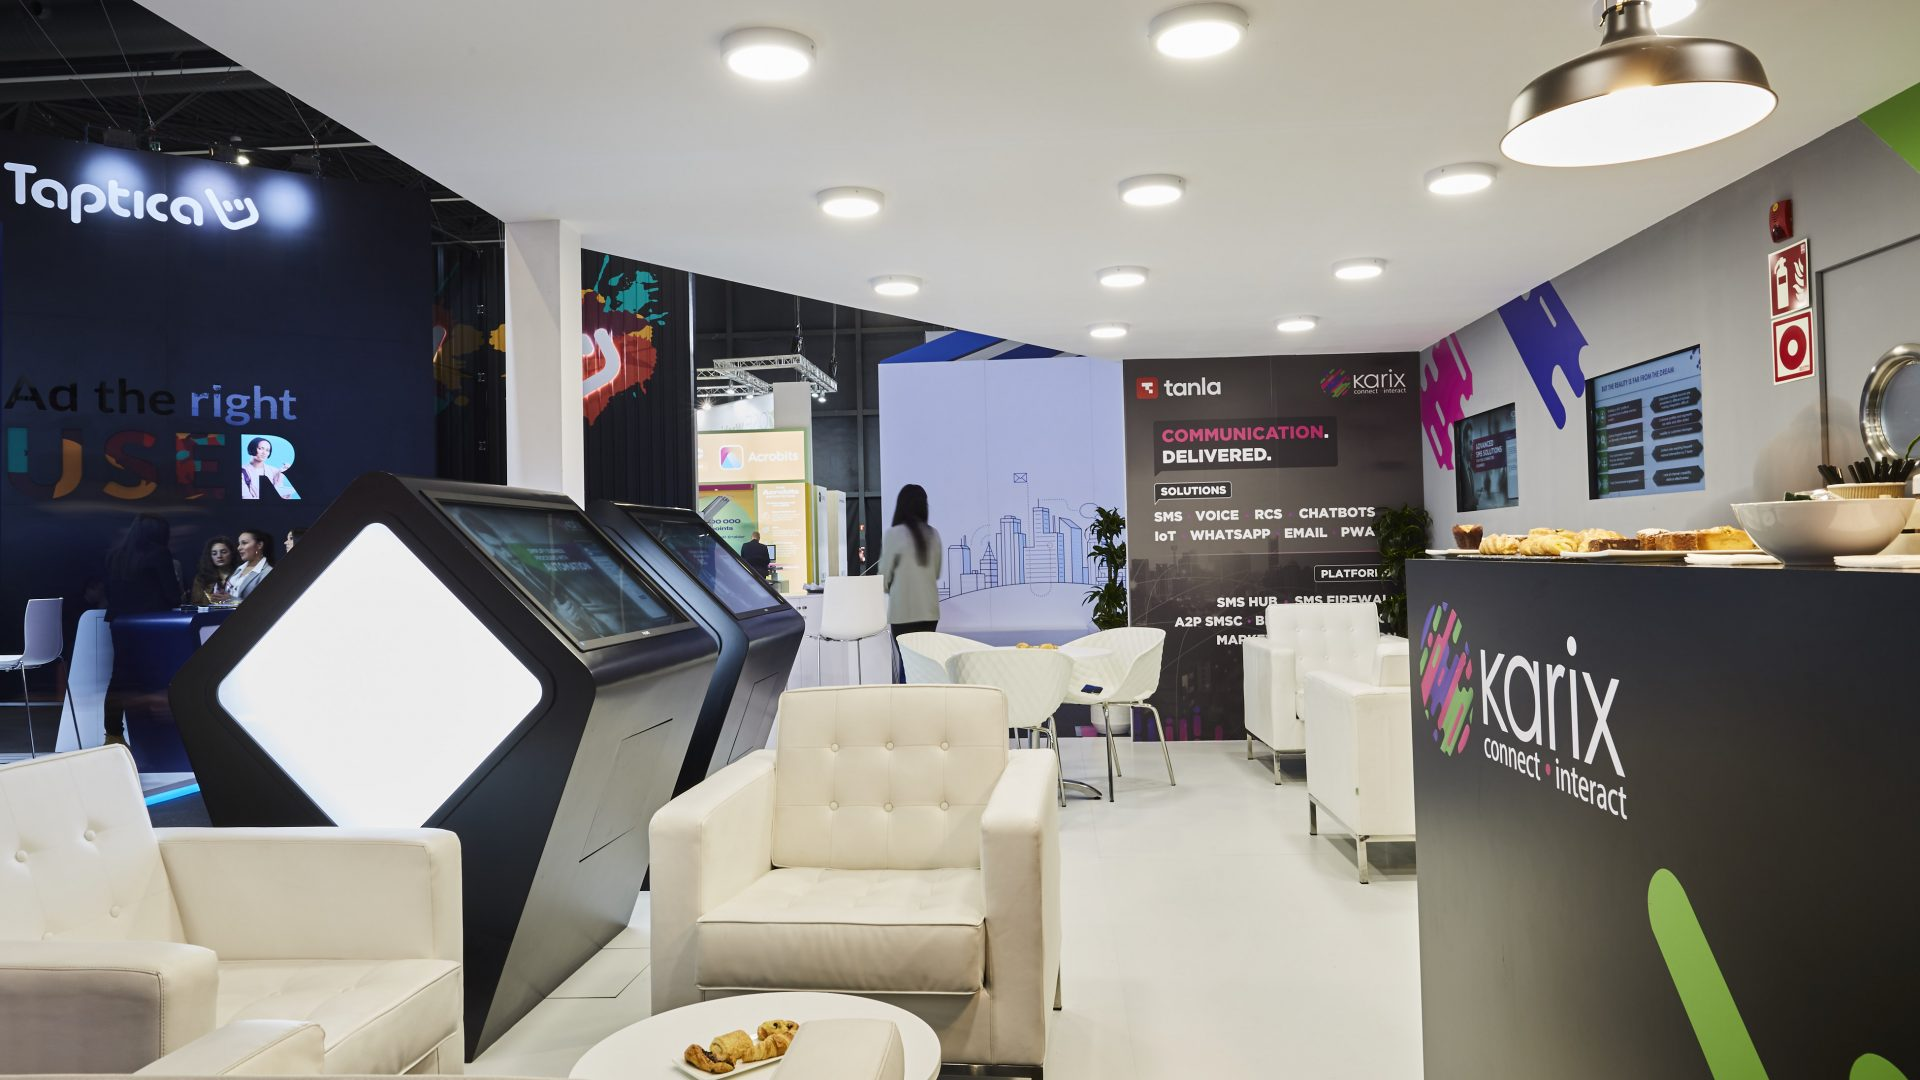 Karix stand at MWC 2019 - lounge area with bar and custom made demo stations